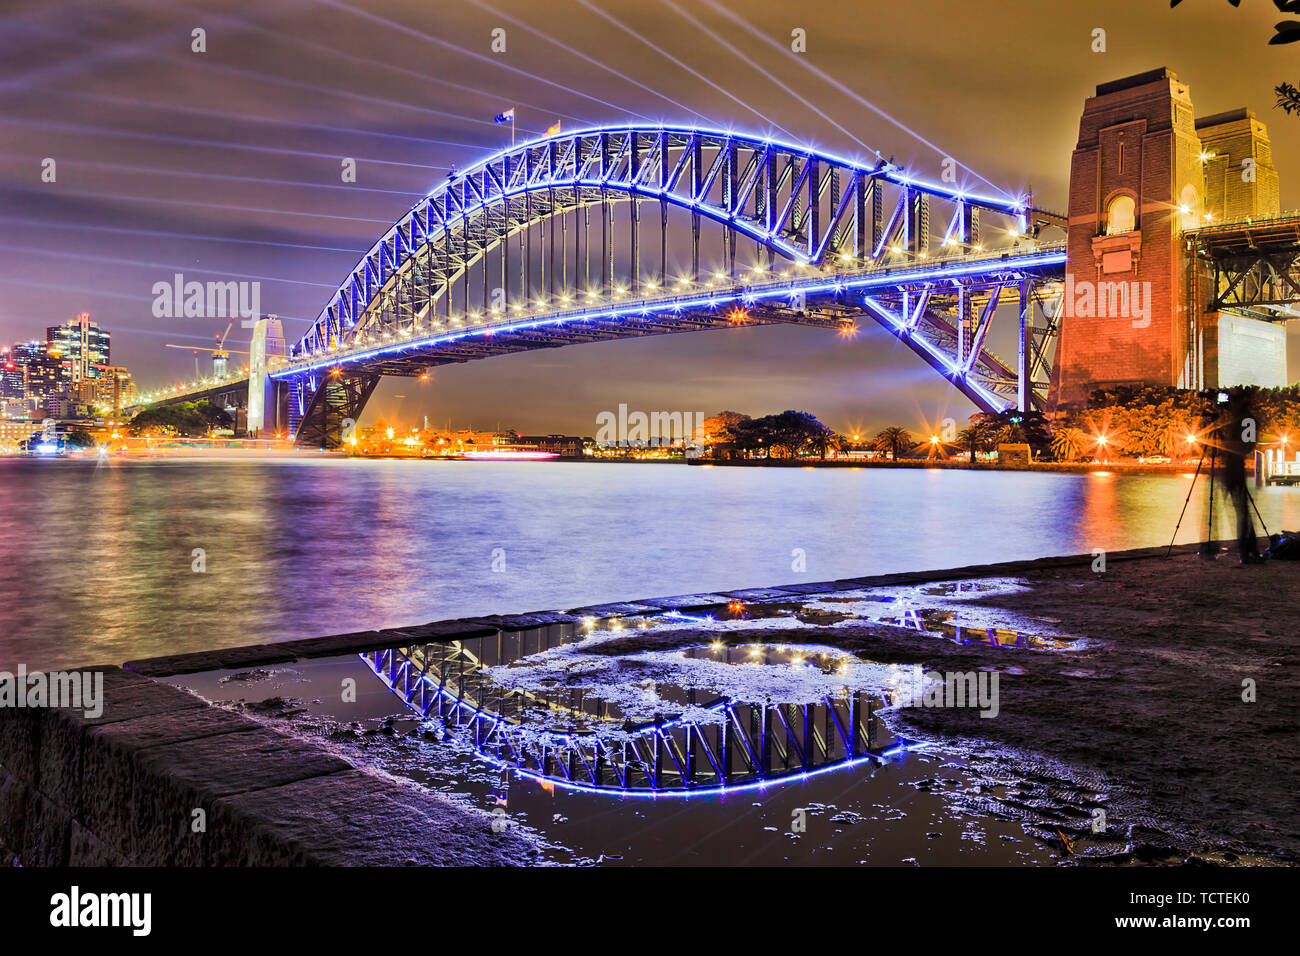 Massive steel arch of the Sydney harbour bridge over Sydney harbour reflecting in puddle with blue laser beams in dark sky at Vivid Sydney light show. - Stock Image